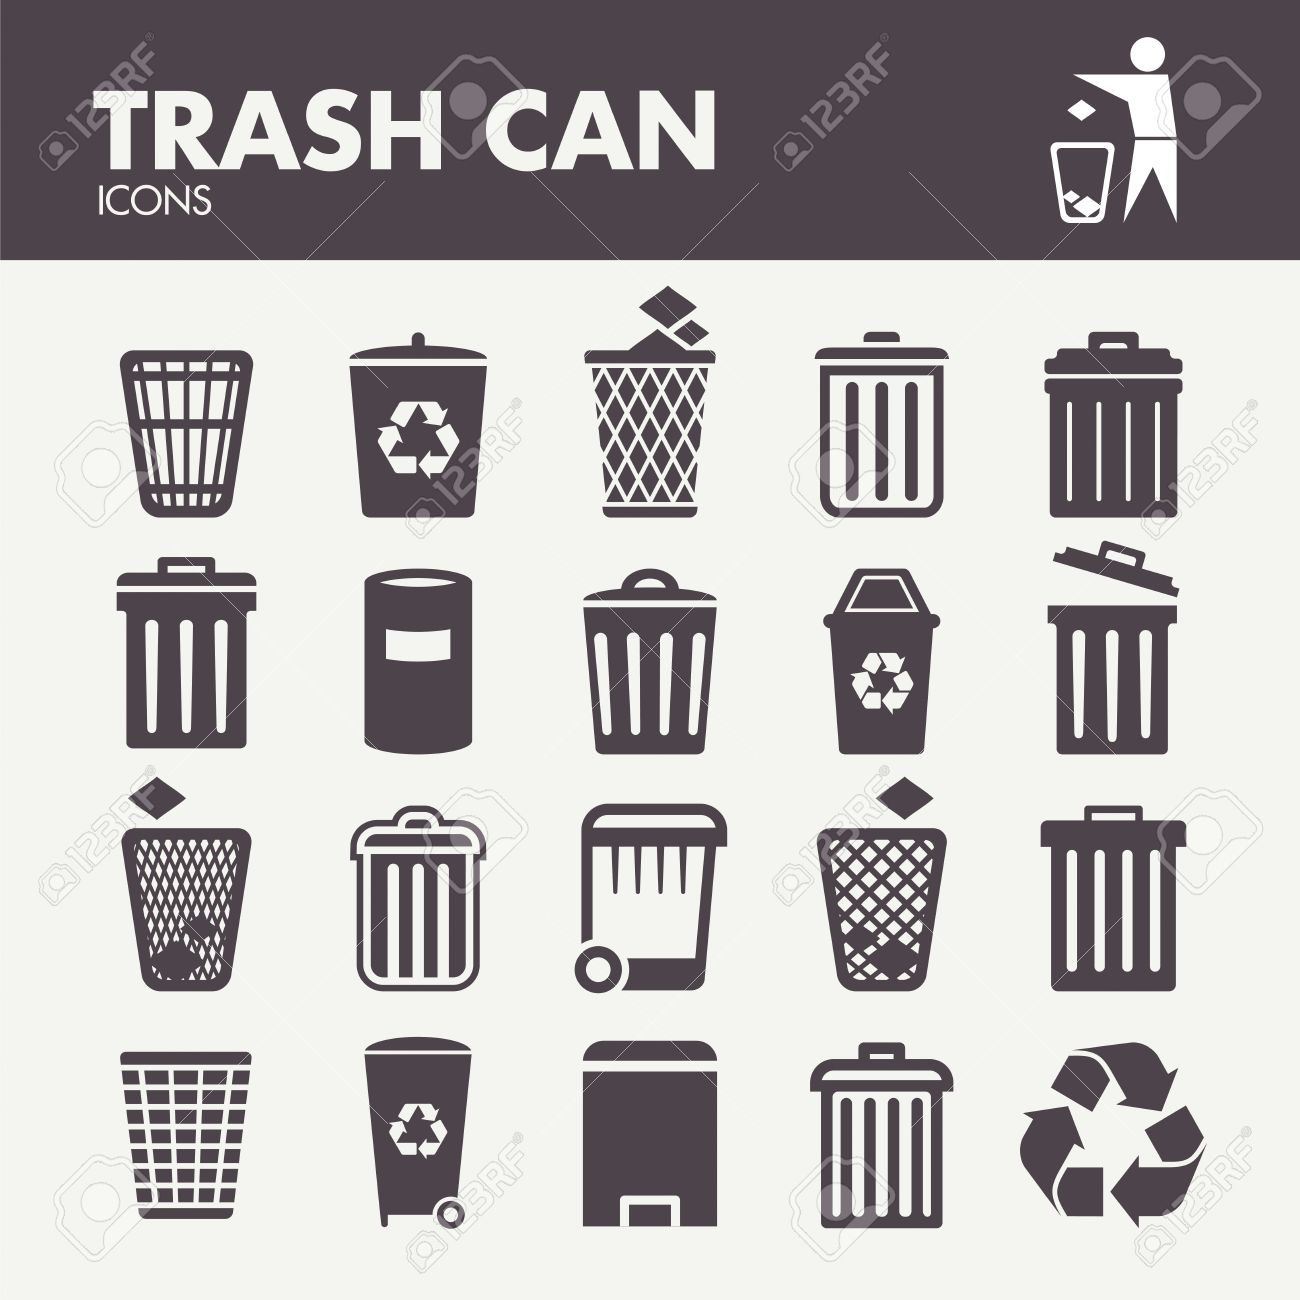 Trash can. Icons set in vector - 48297445